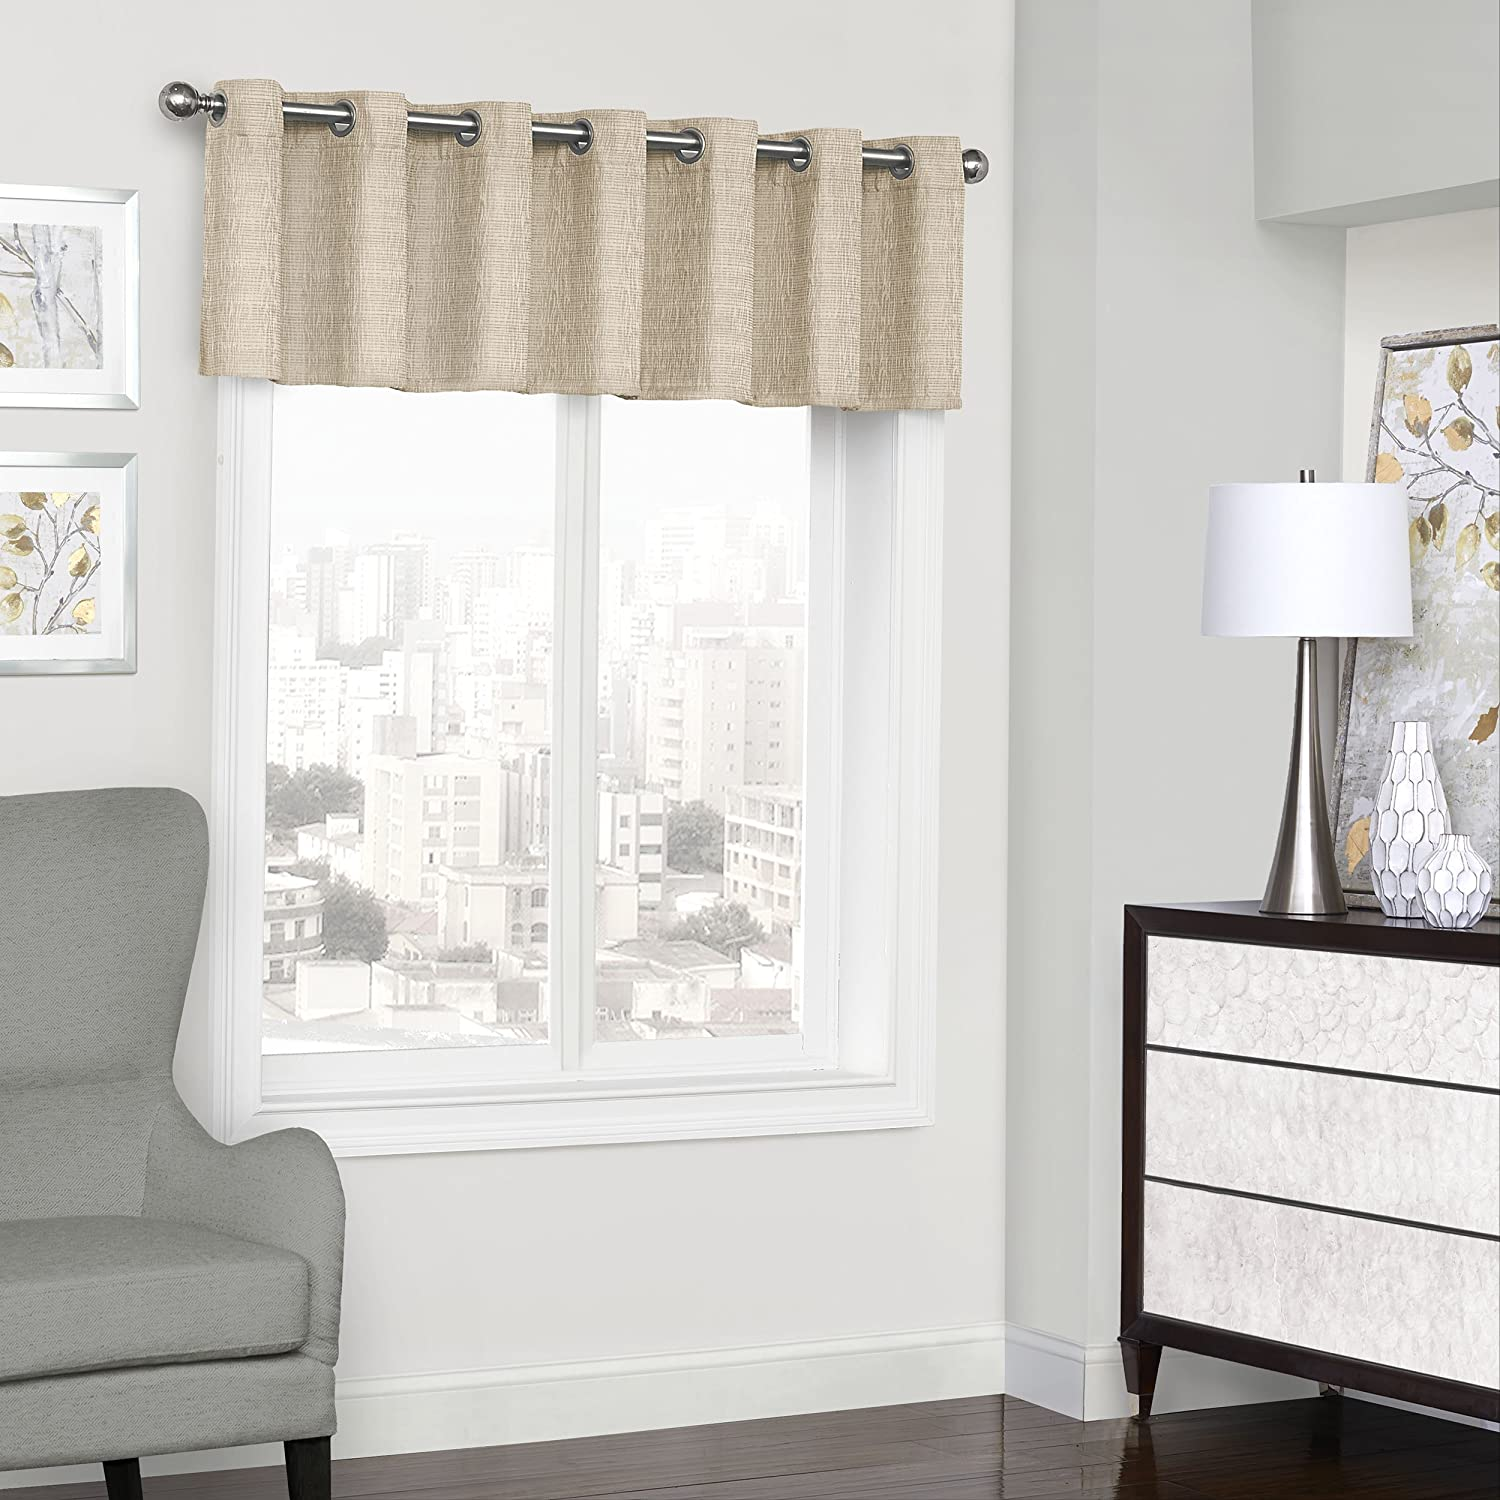 ECLIPSE Directly managed store Trevi Short Valance Small Bathroom Phoenix Mall Window Livi Curtains